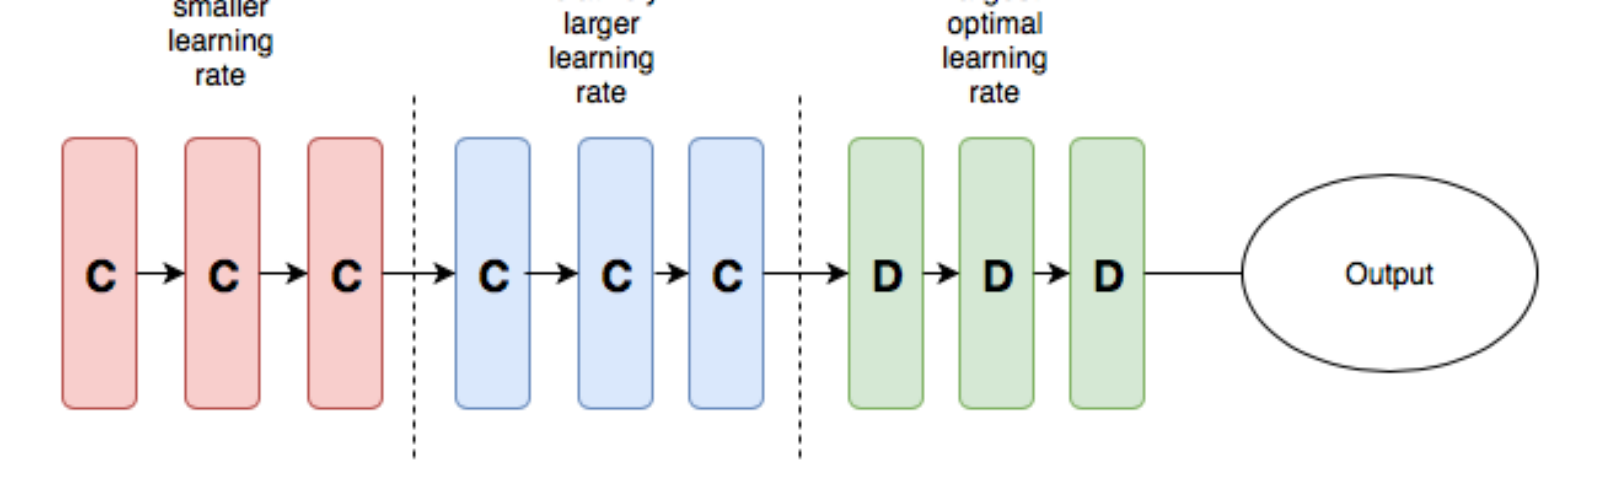 Exploring Learning Rates to improve model performance in Keras